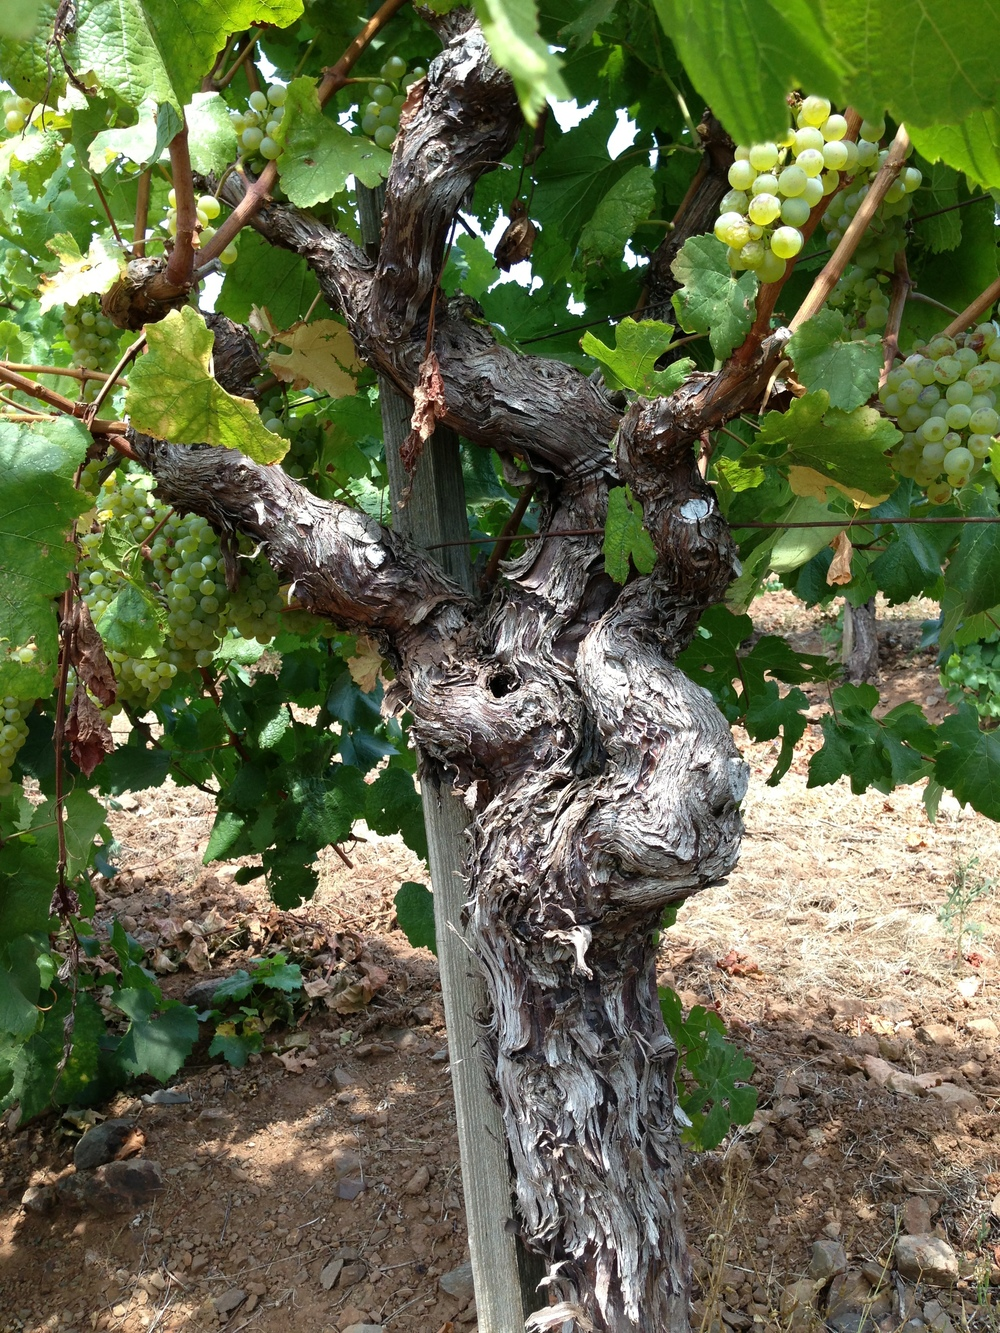 50 Year-Old Vines